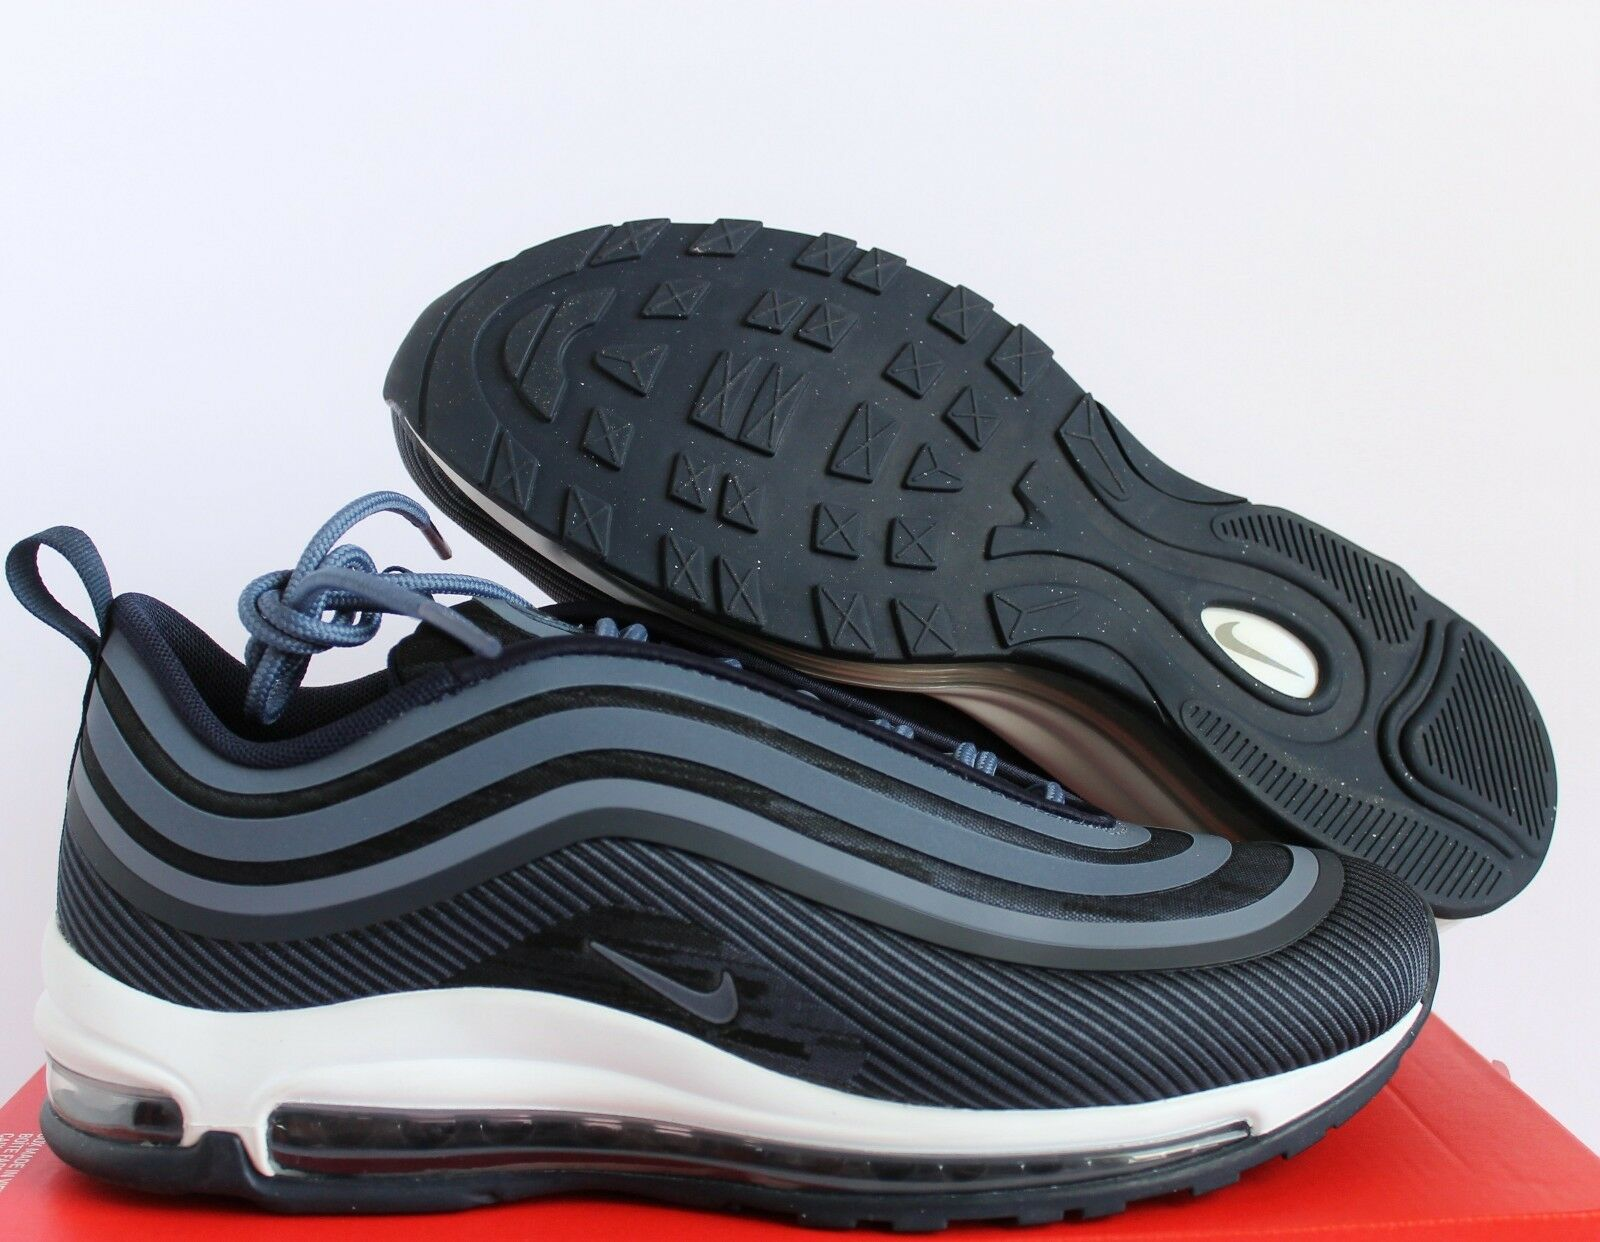 NIKE AIR MAX 97 UL ULTRA '17 OBSIDIAN-DIFFUSED blueE-WHITE SZ 8